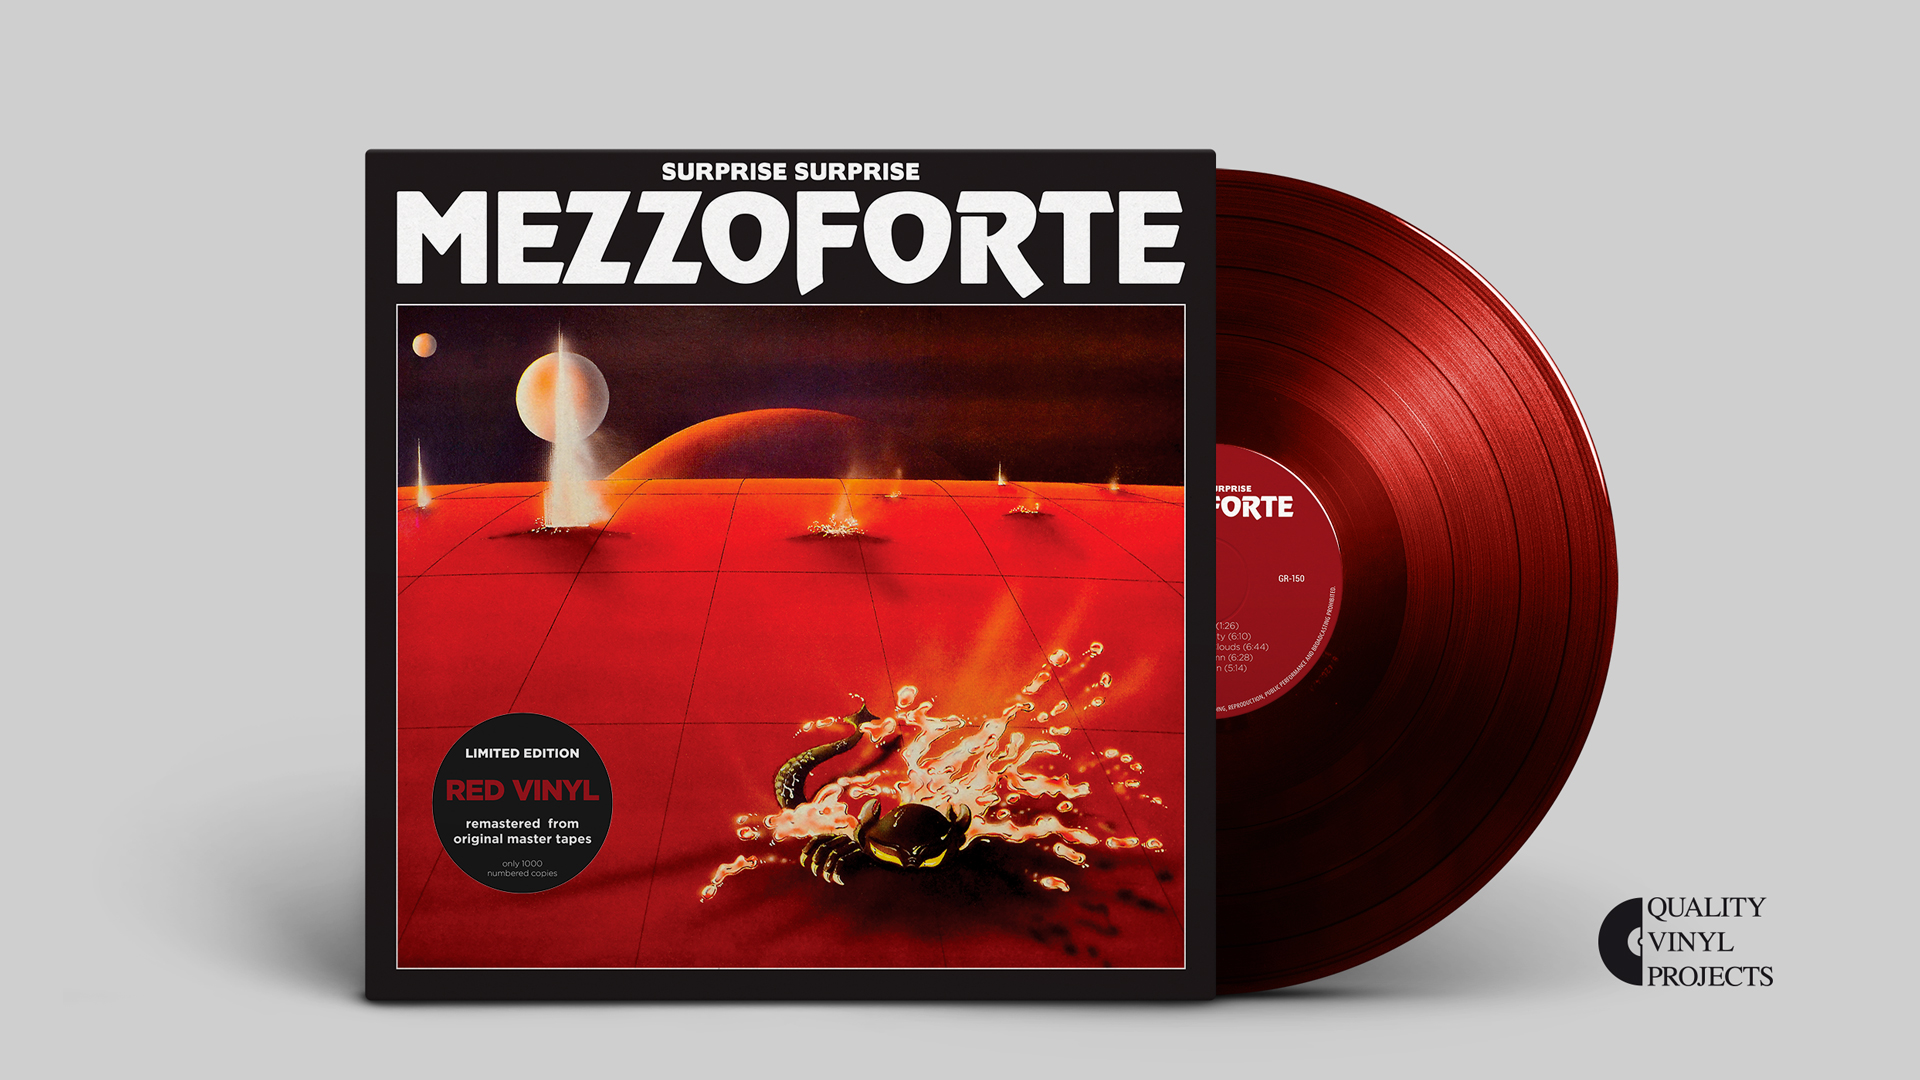 A MEZZOFORTE album like you've never heard before